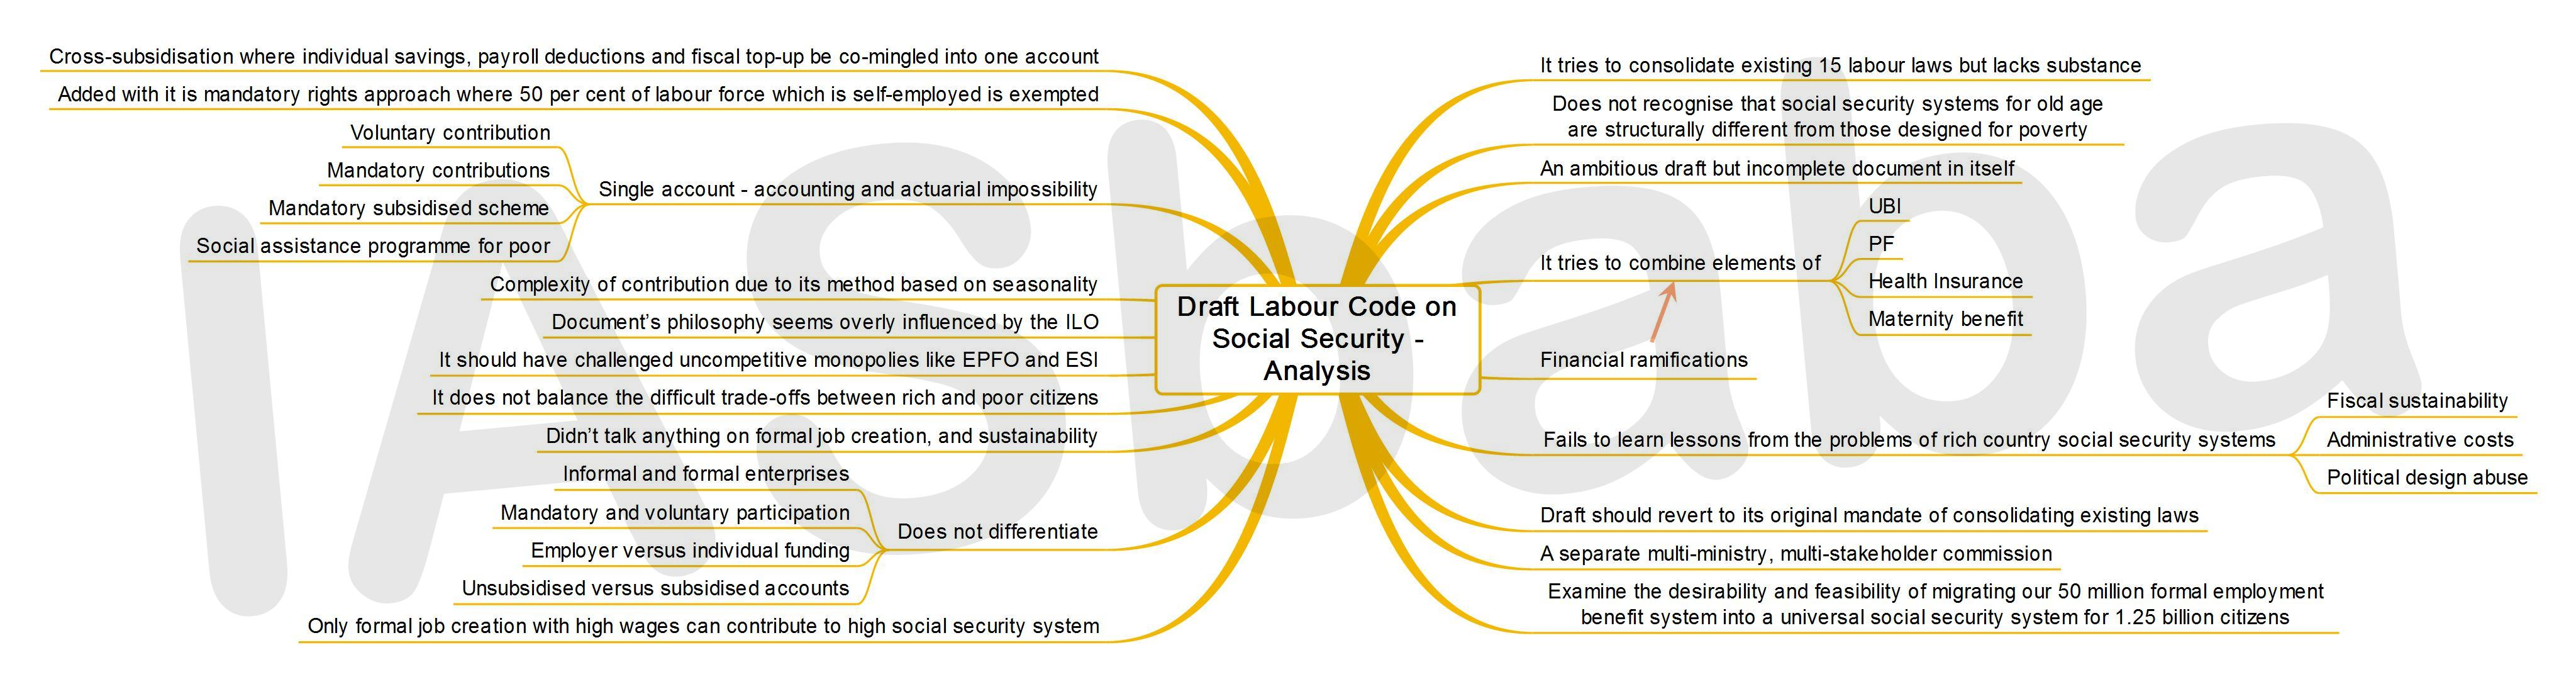 IASbaba's MINDMAP : Issue - Draft Labour Code on Social Security - Analysis